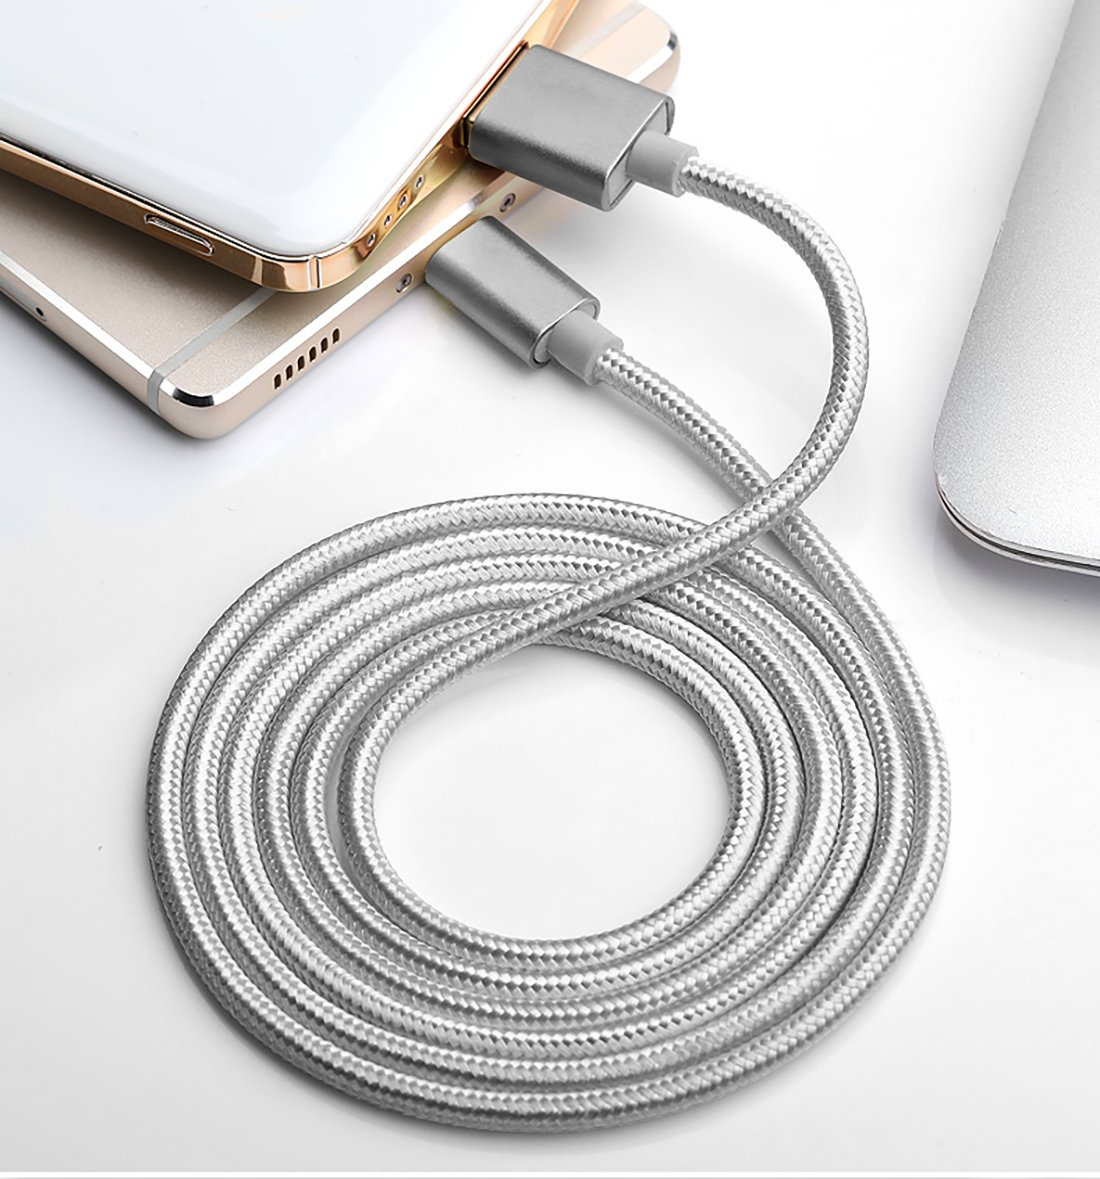 Quntis 3 Pack 6ft Android Charger Cable Nylon Braided Ultra Durable Micro USB Cables Gray QBUSB02